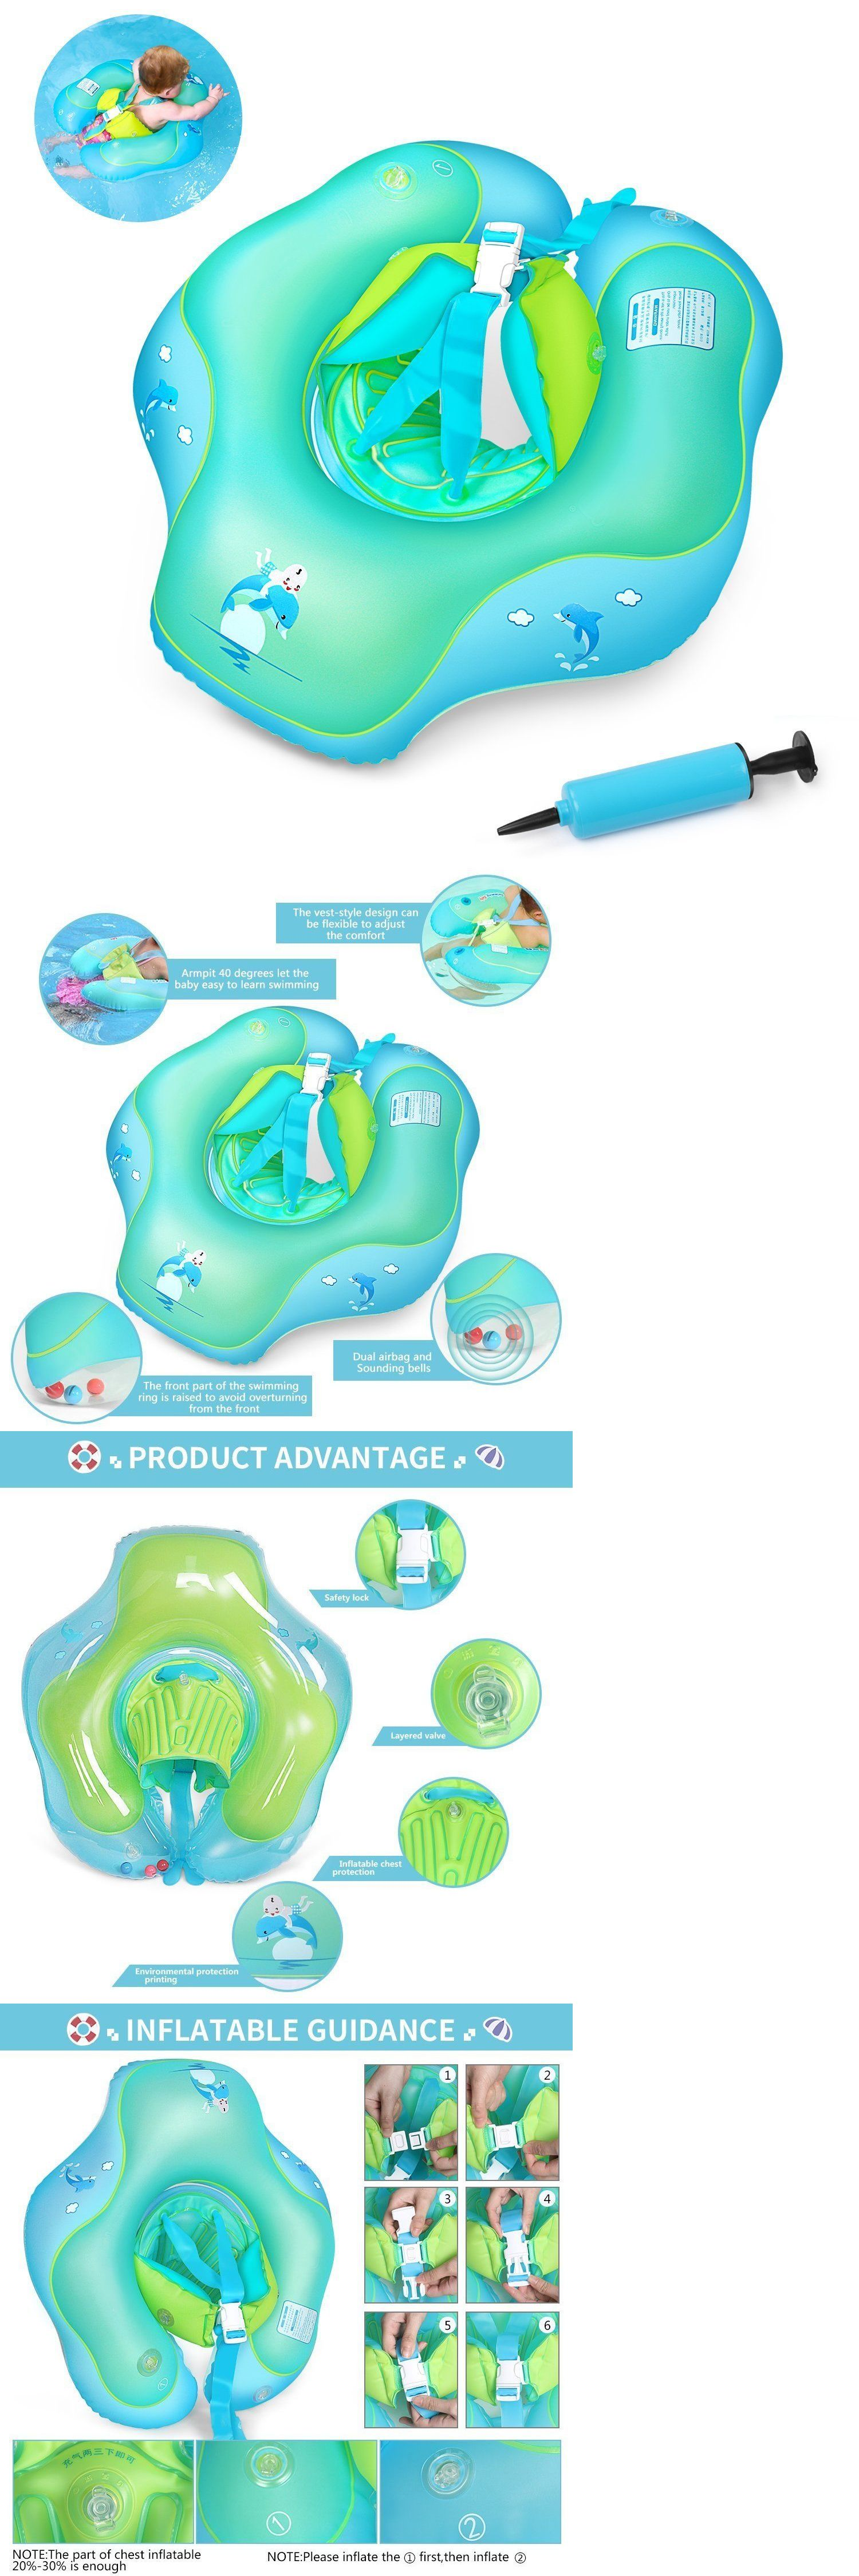 Bath Tub Seats and Rings 162024: New Free Swimming Baby Inflatable ...